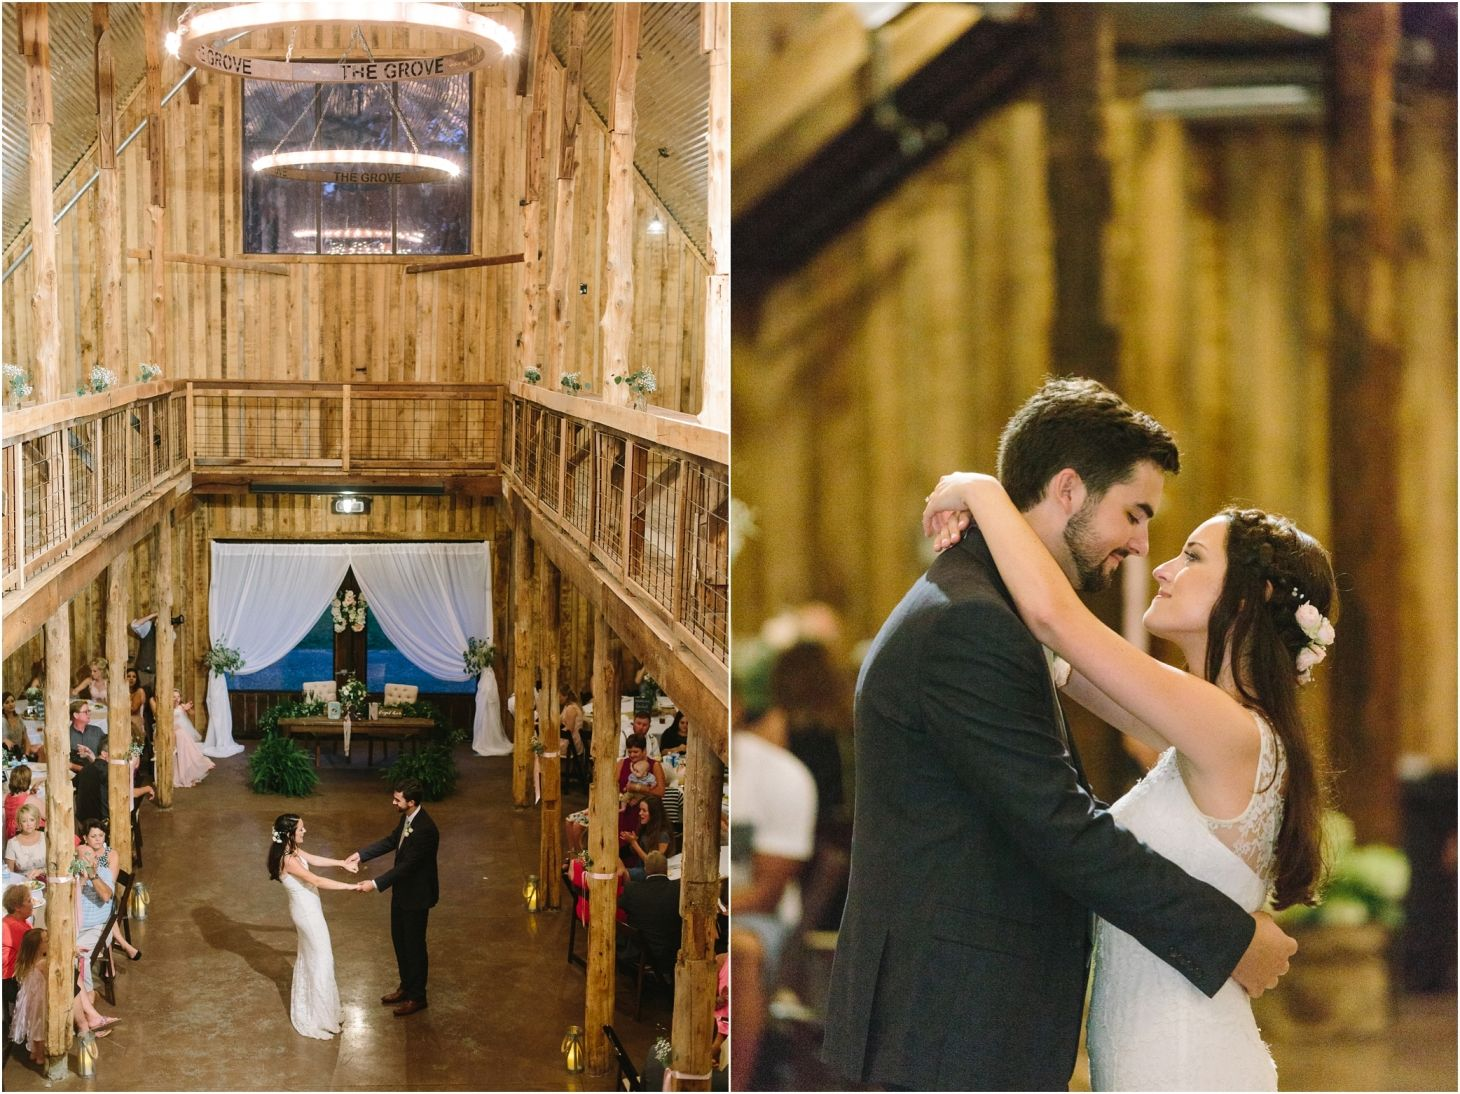 A Wedding At The Grove Williamson Place In Murfreesboro Tennessee Farm And Barn Venue Near Nashville